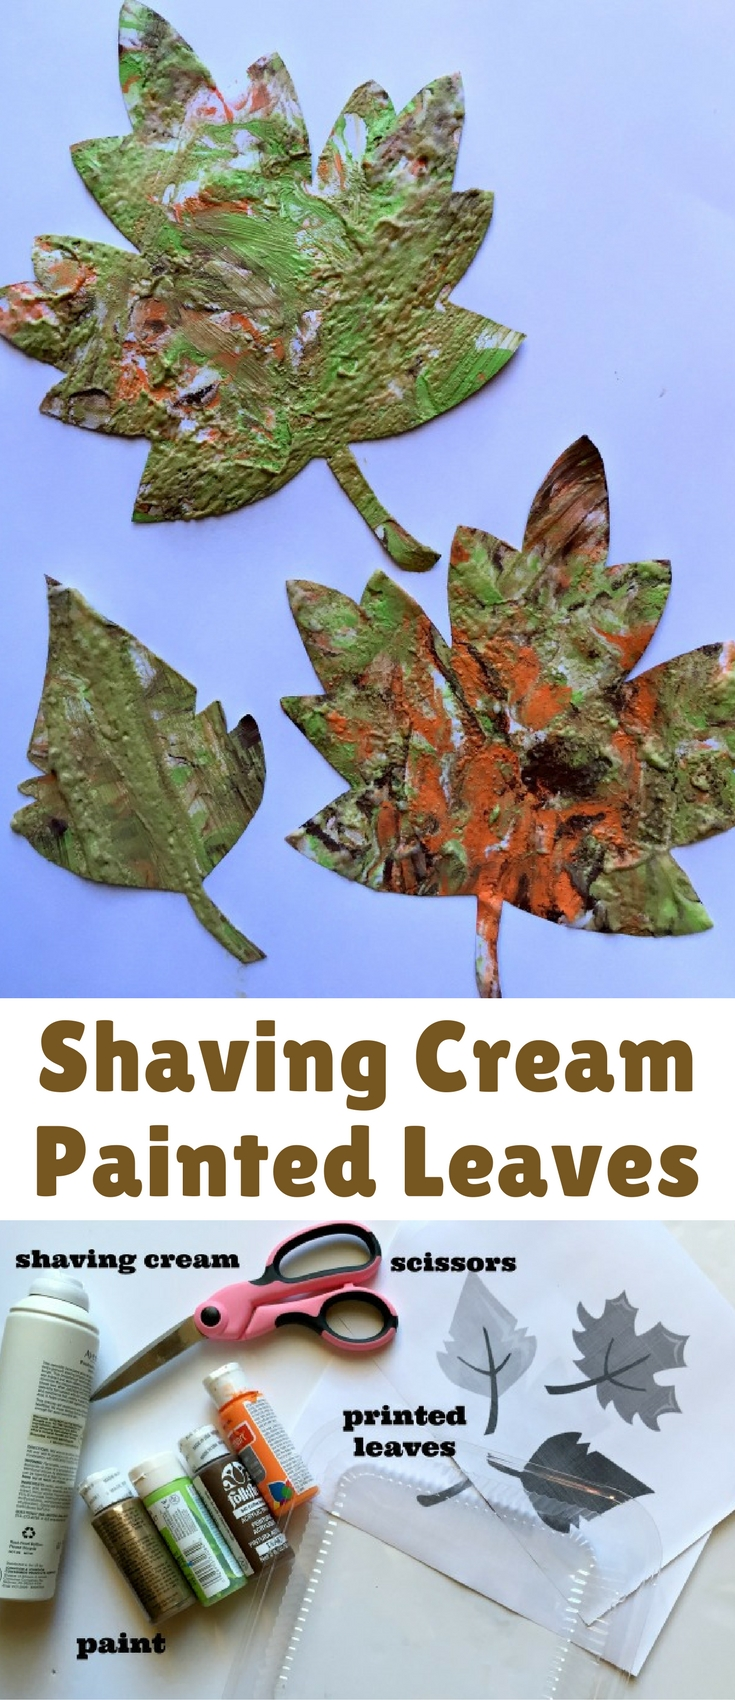 Have you or your child ever painted with shaving cream before? Give it a try the next time your child wants to paint!